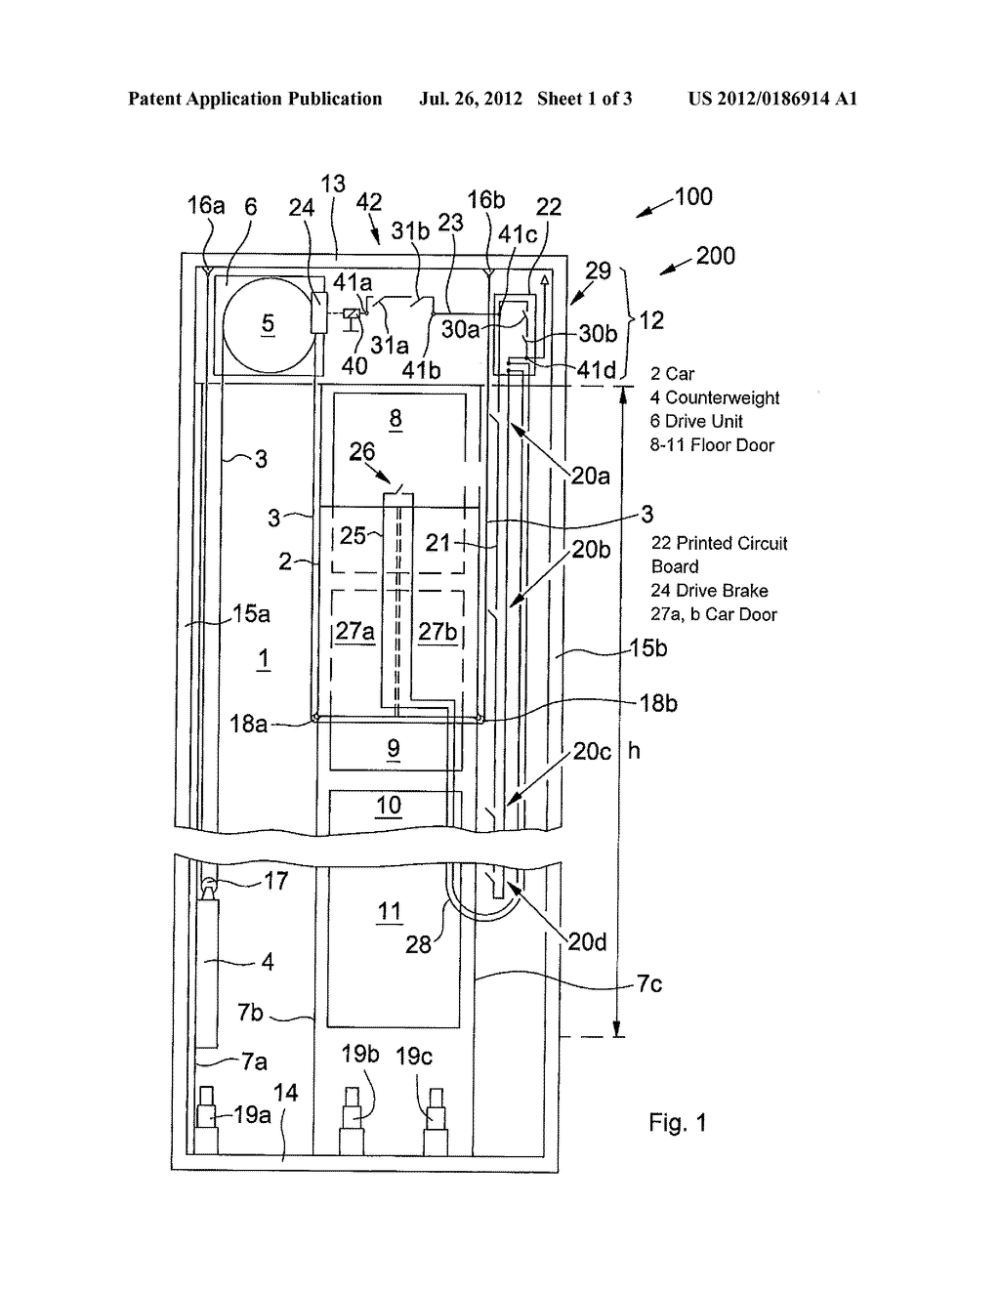 medium resolution of safety circuit in an elevator system diagram schematic and image 02 elevator circuit diagram elevator circuit diagram more